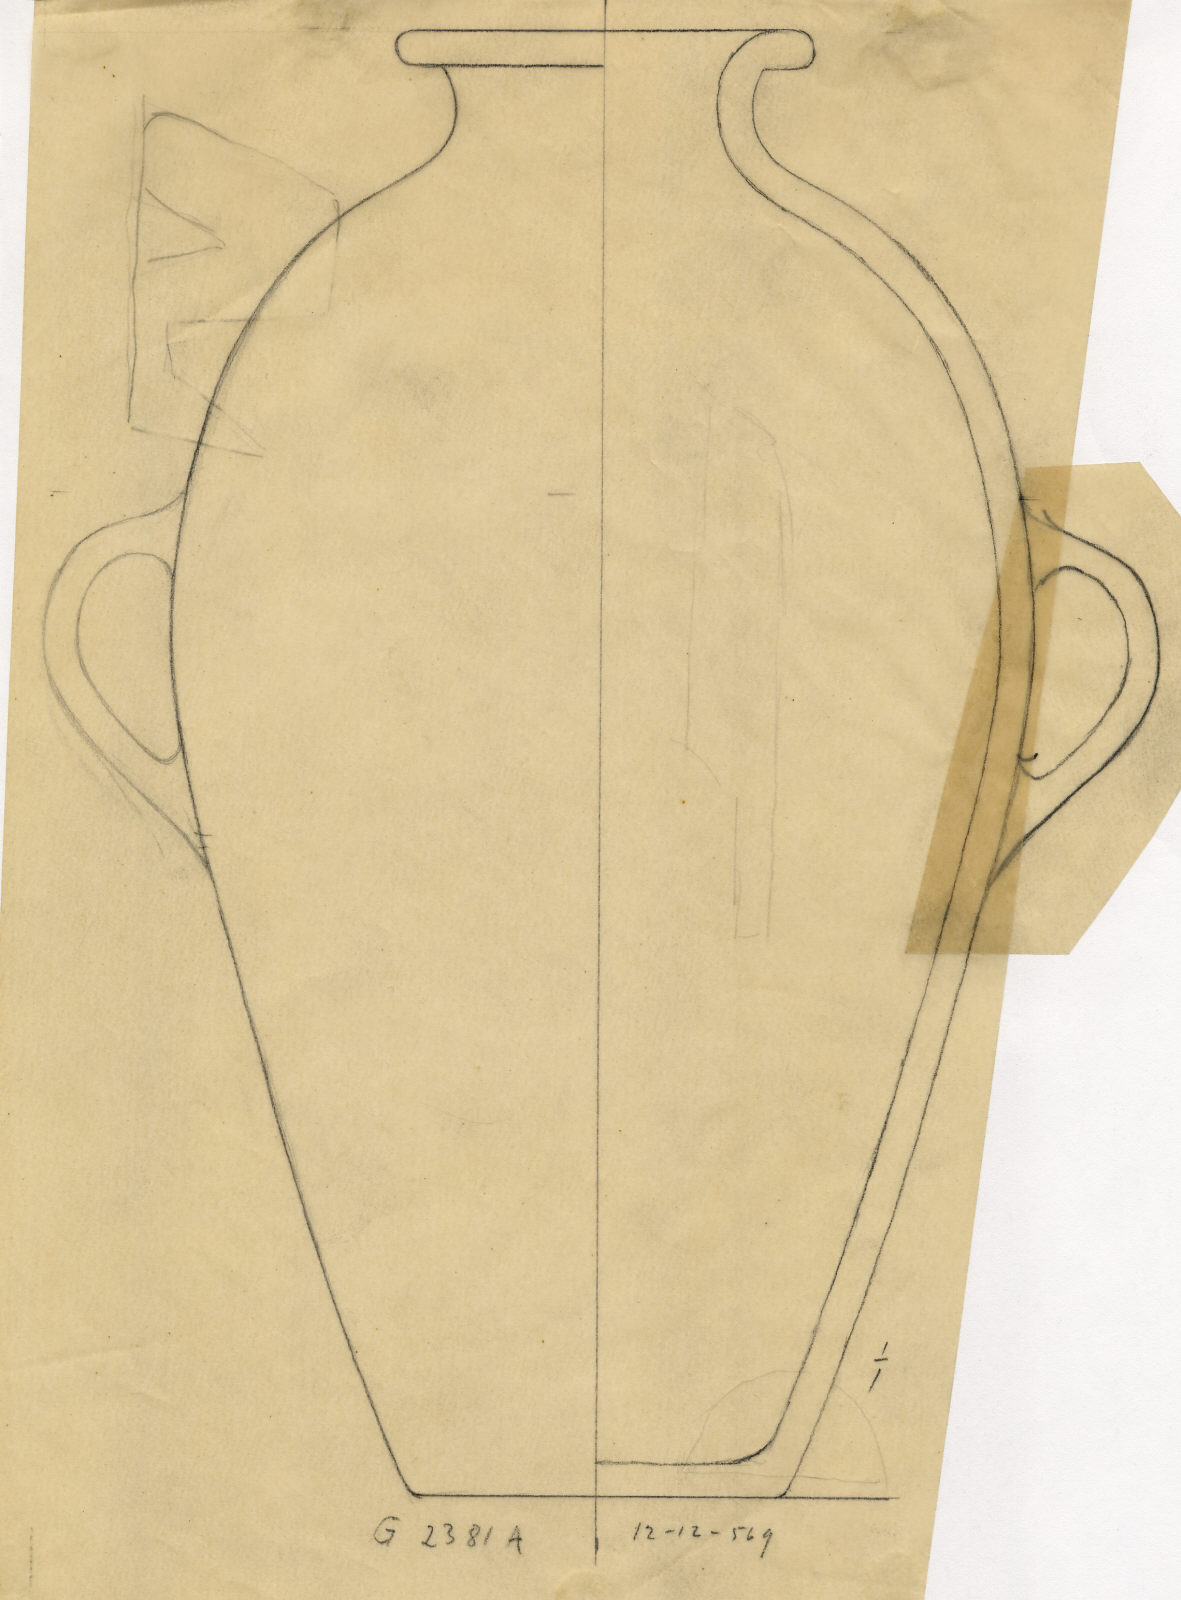 Drawings: G 2381, Shaft A: pottery, jar with two handles